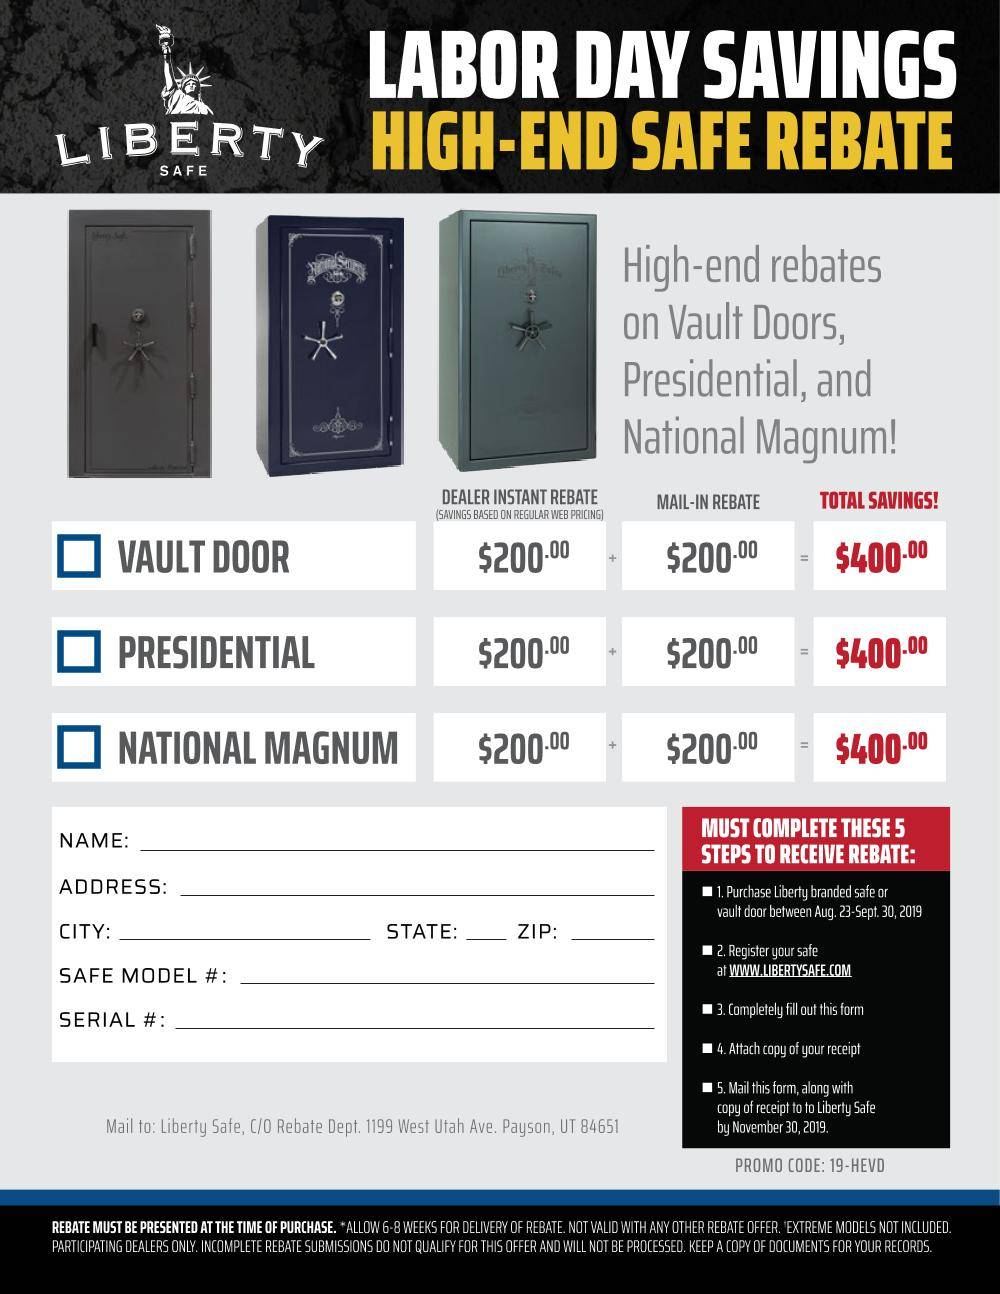 Liberty Safe Labor Day Mail in Rebate